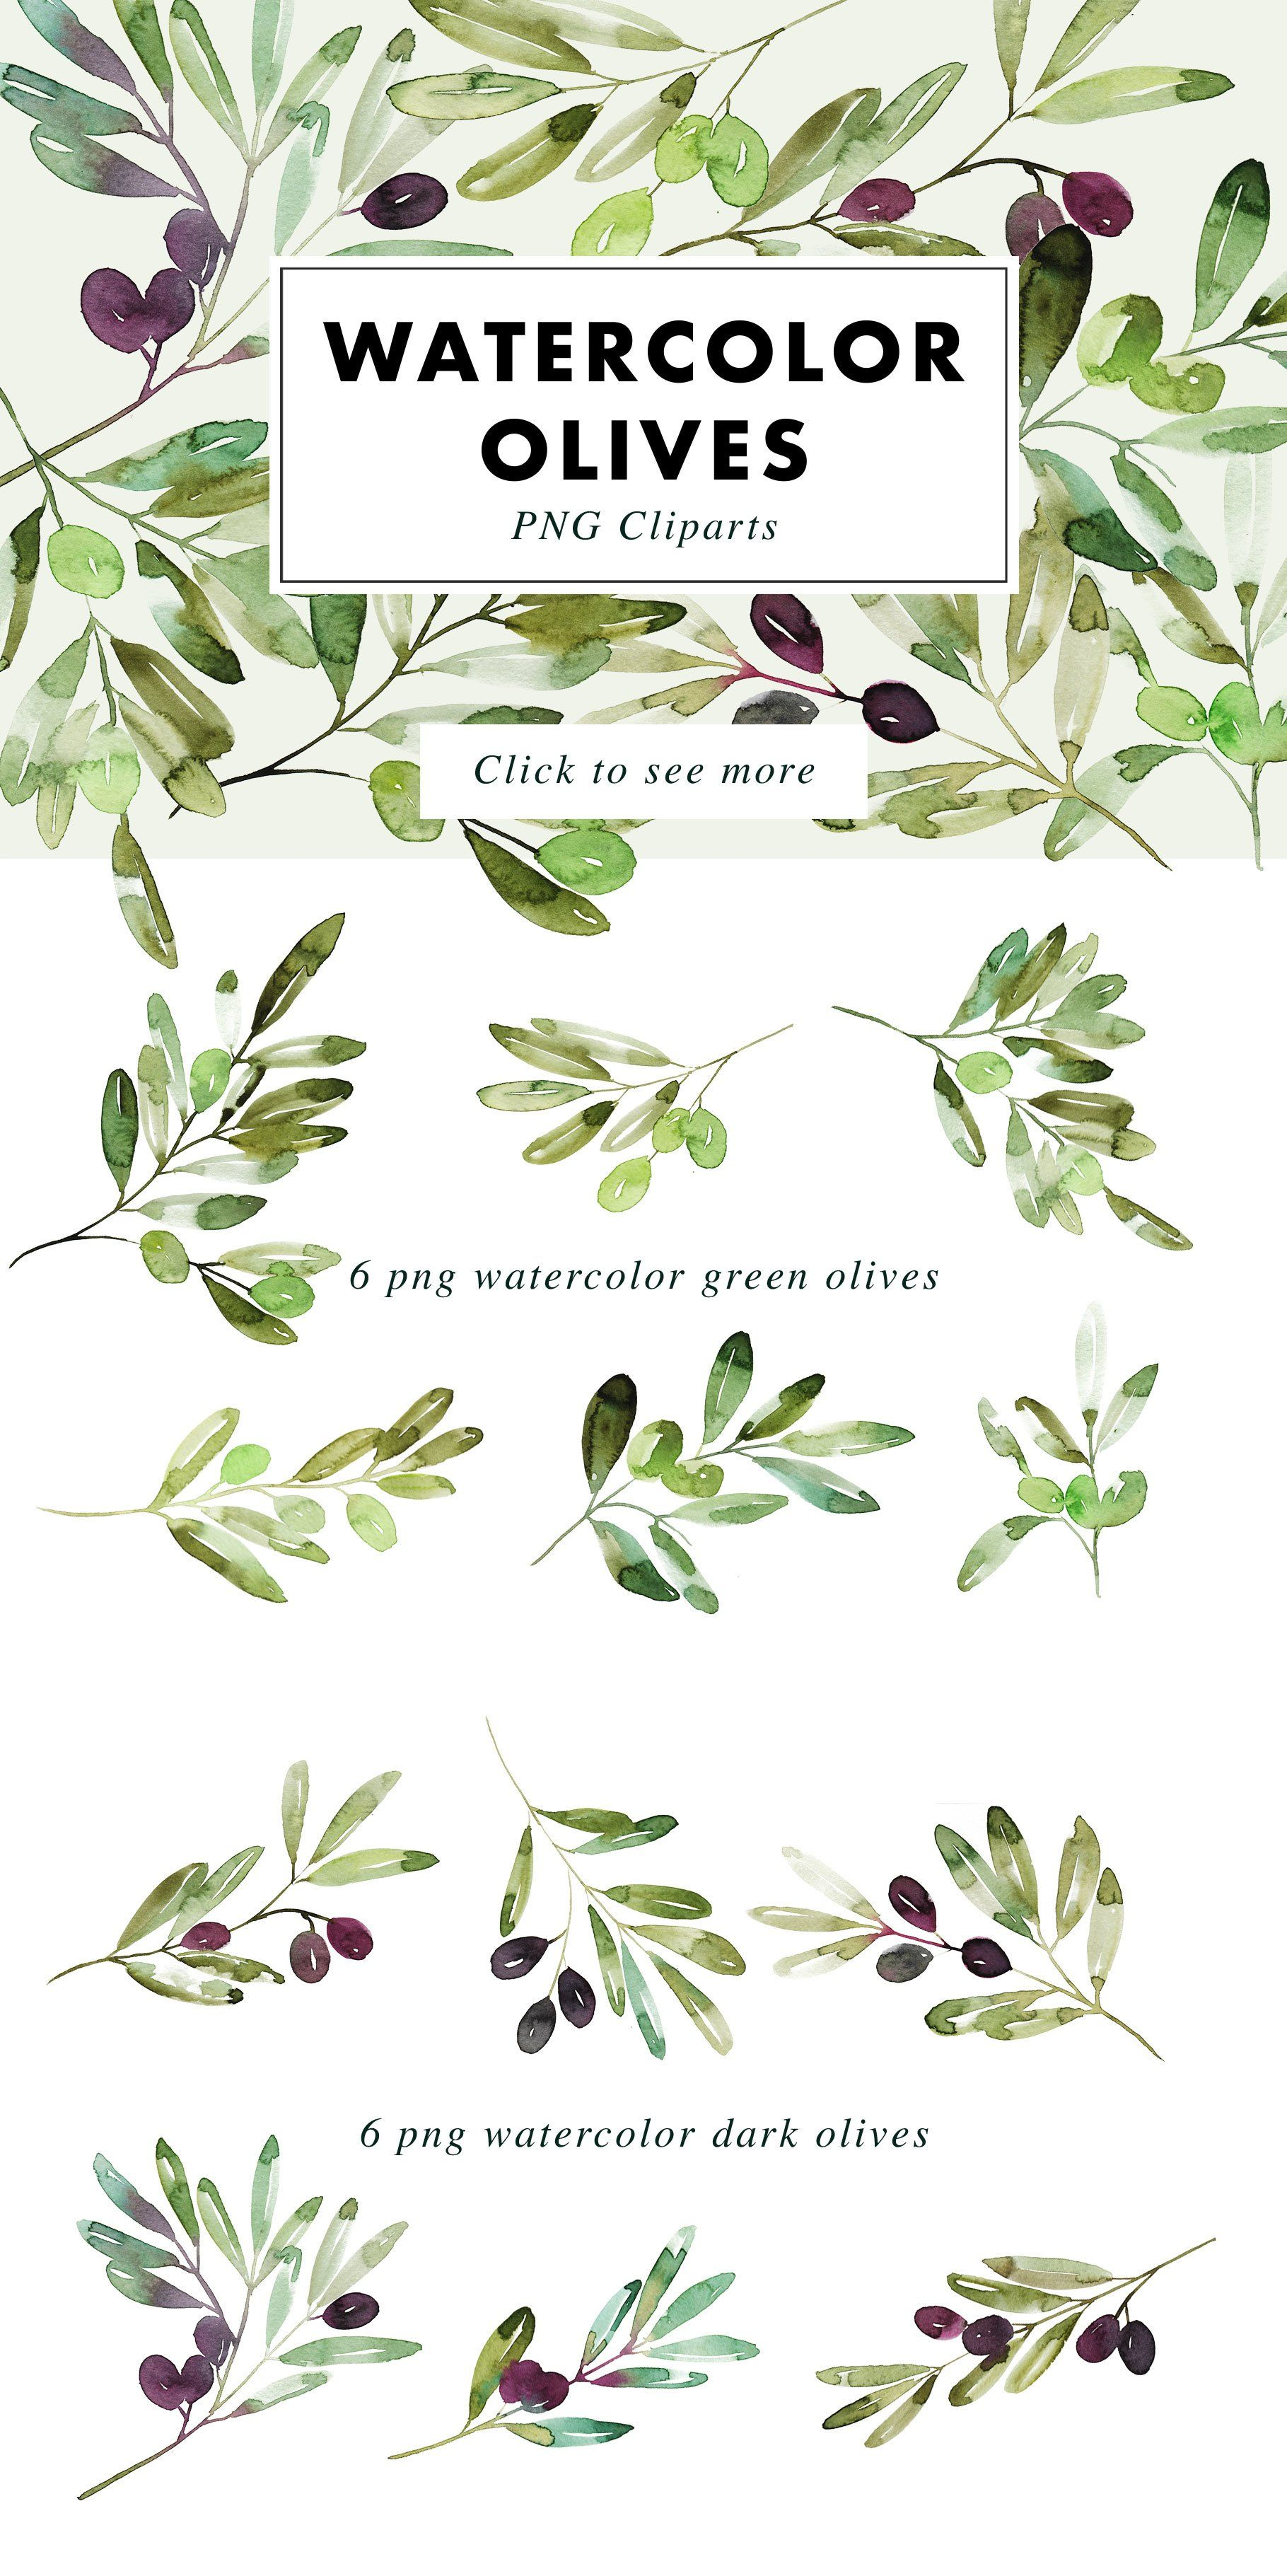 12 Watercolor Olive Branches 688892 Illustrations Design Bundles Olive Branch Leaf Illustration Branch Drawing